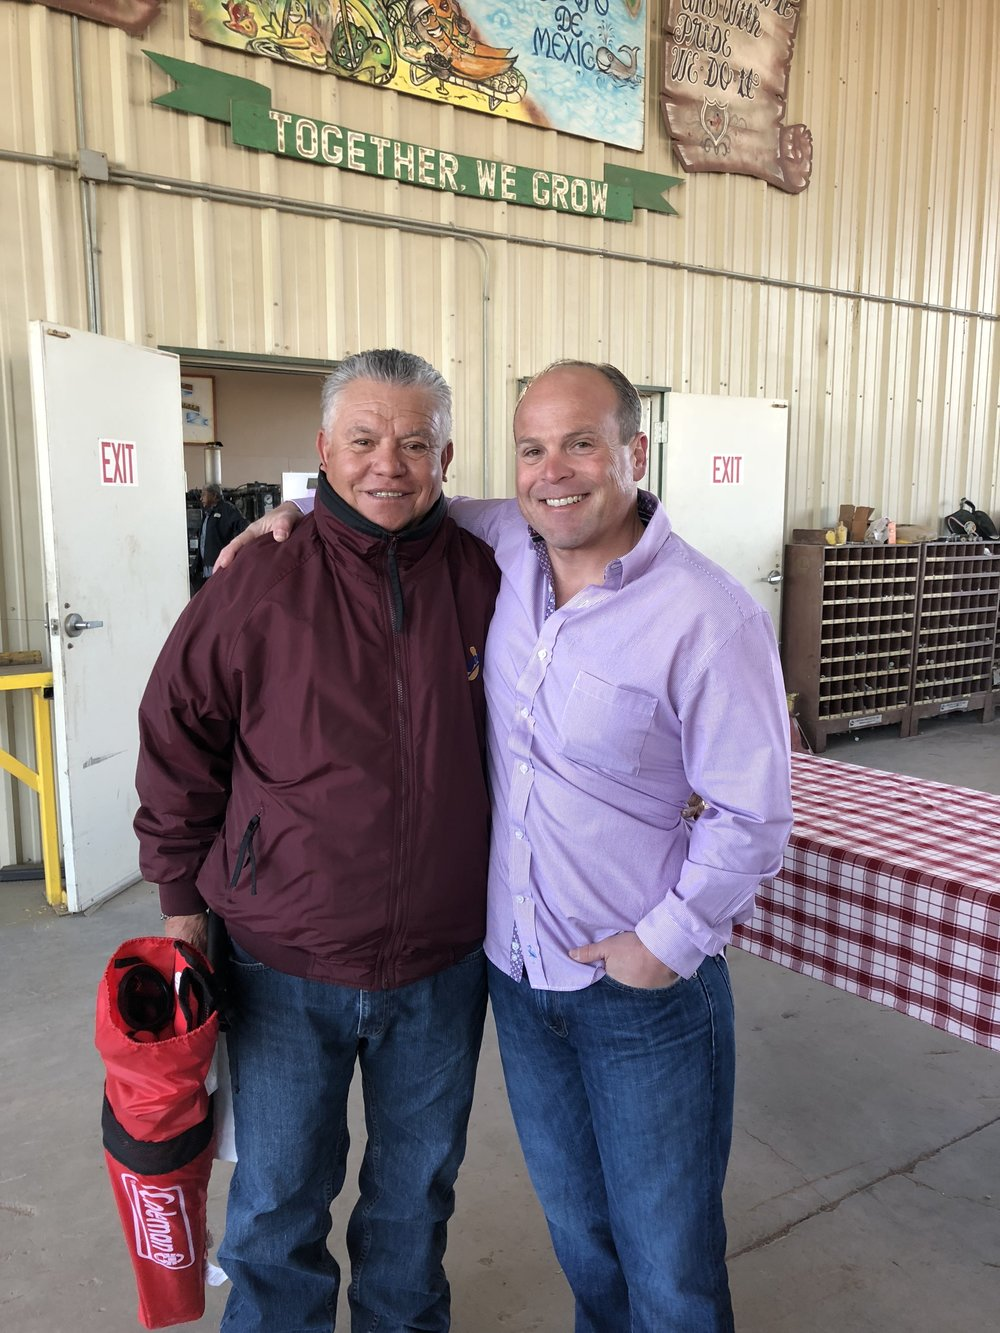 Juan Patiño, Tractor Supervisor was interviewed and will be highlighted on Labor of Love web-page. Mr. Patiño has been with Vessey for 39 years!